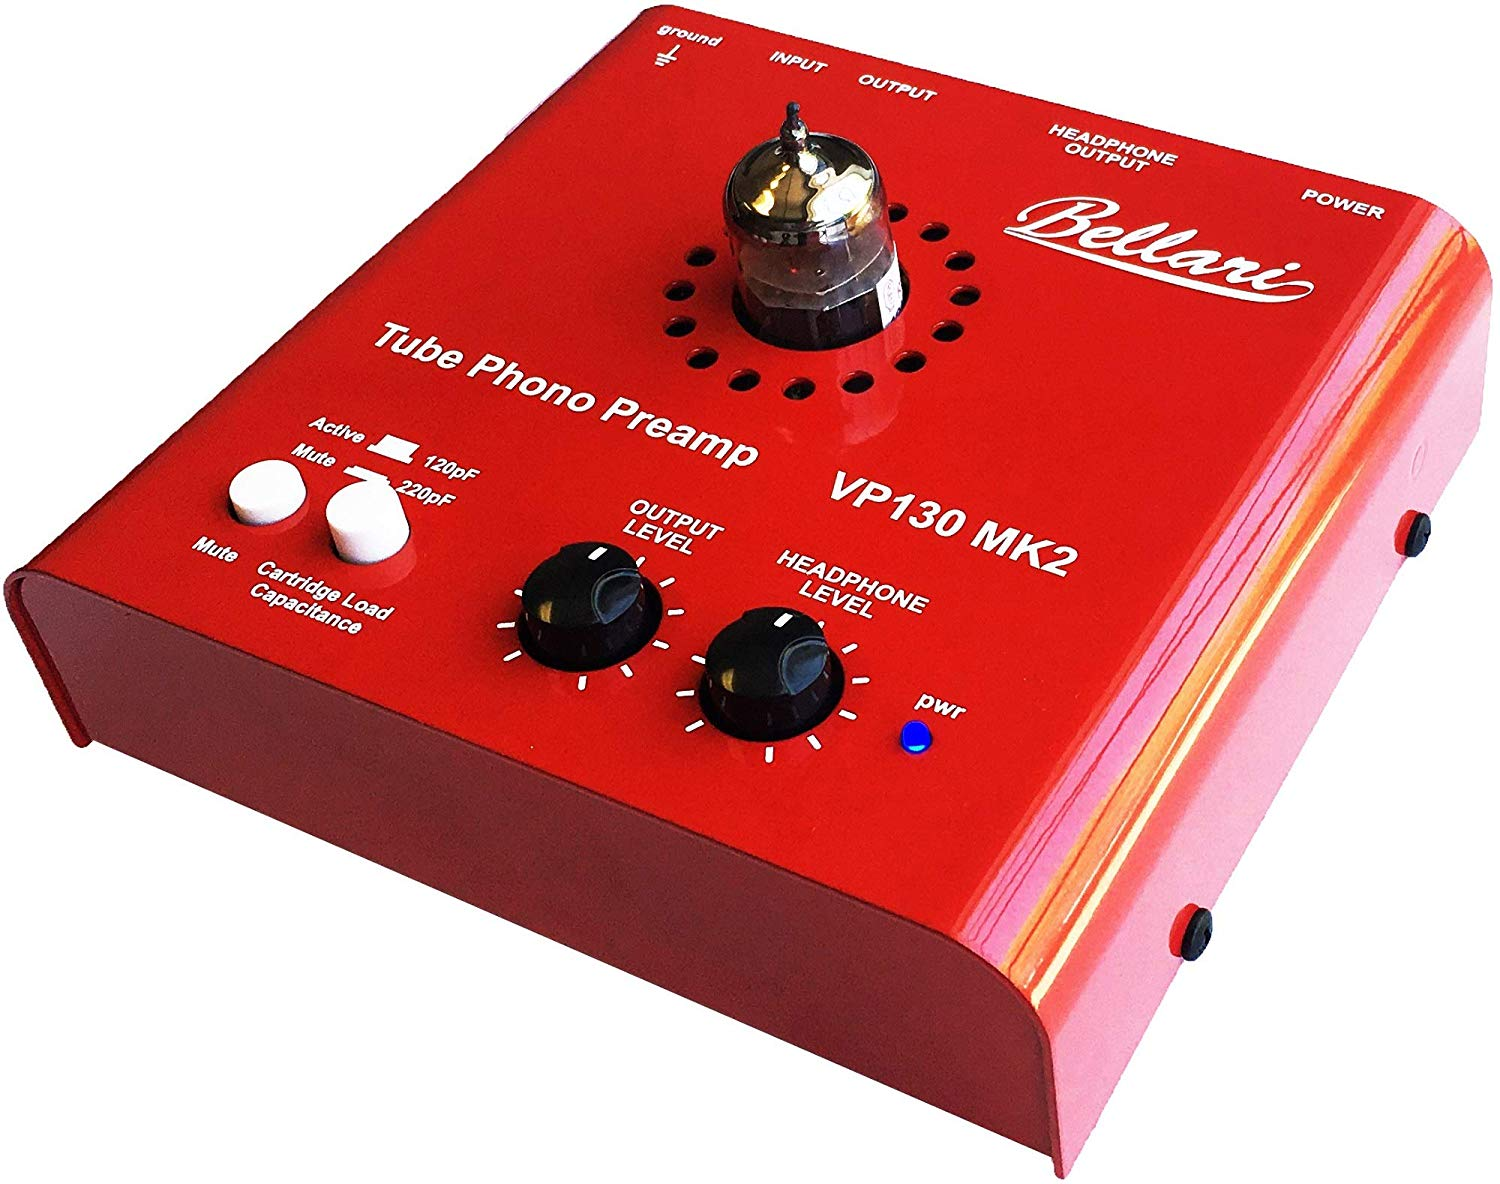 Benefits of tube type preamps